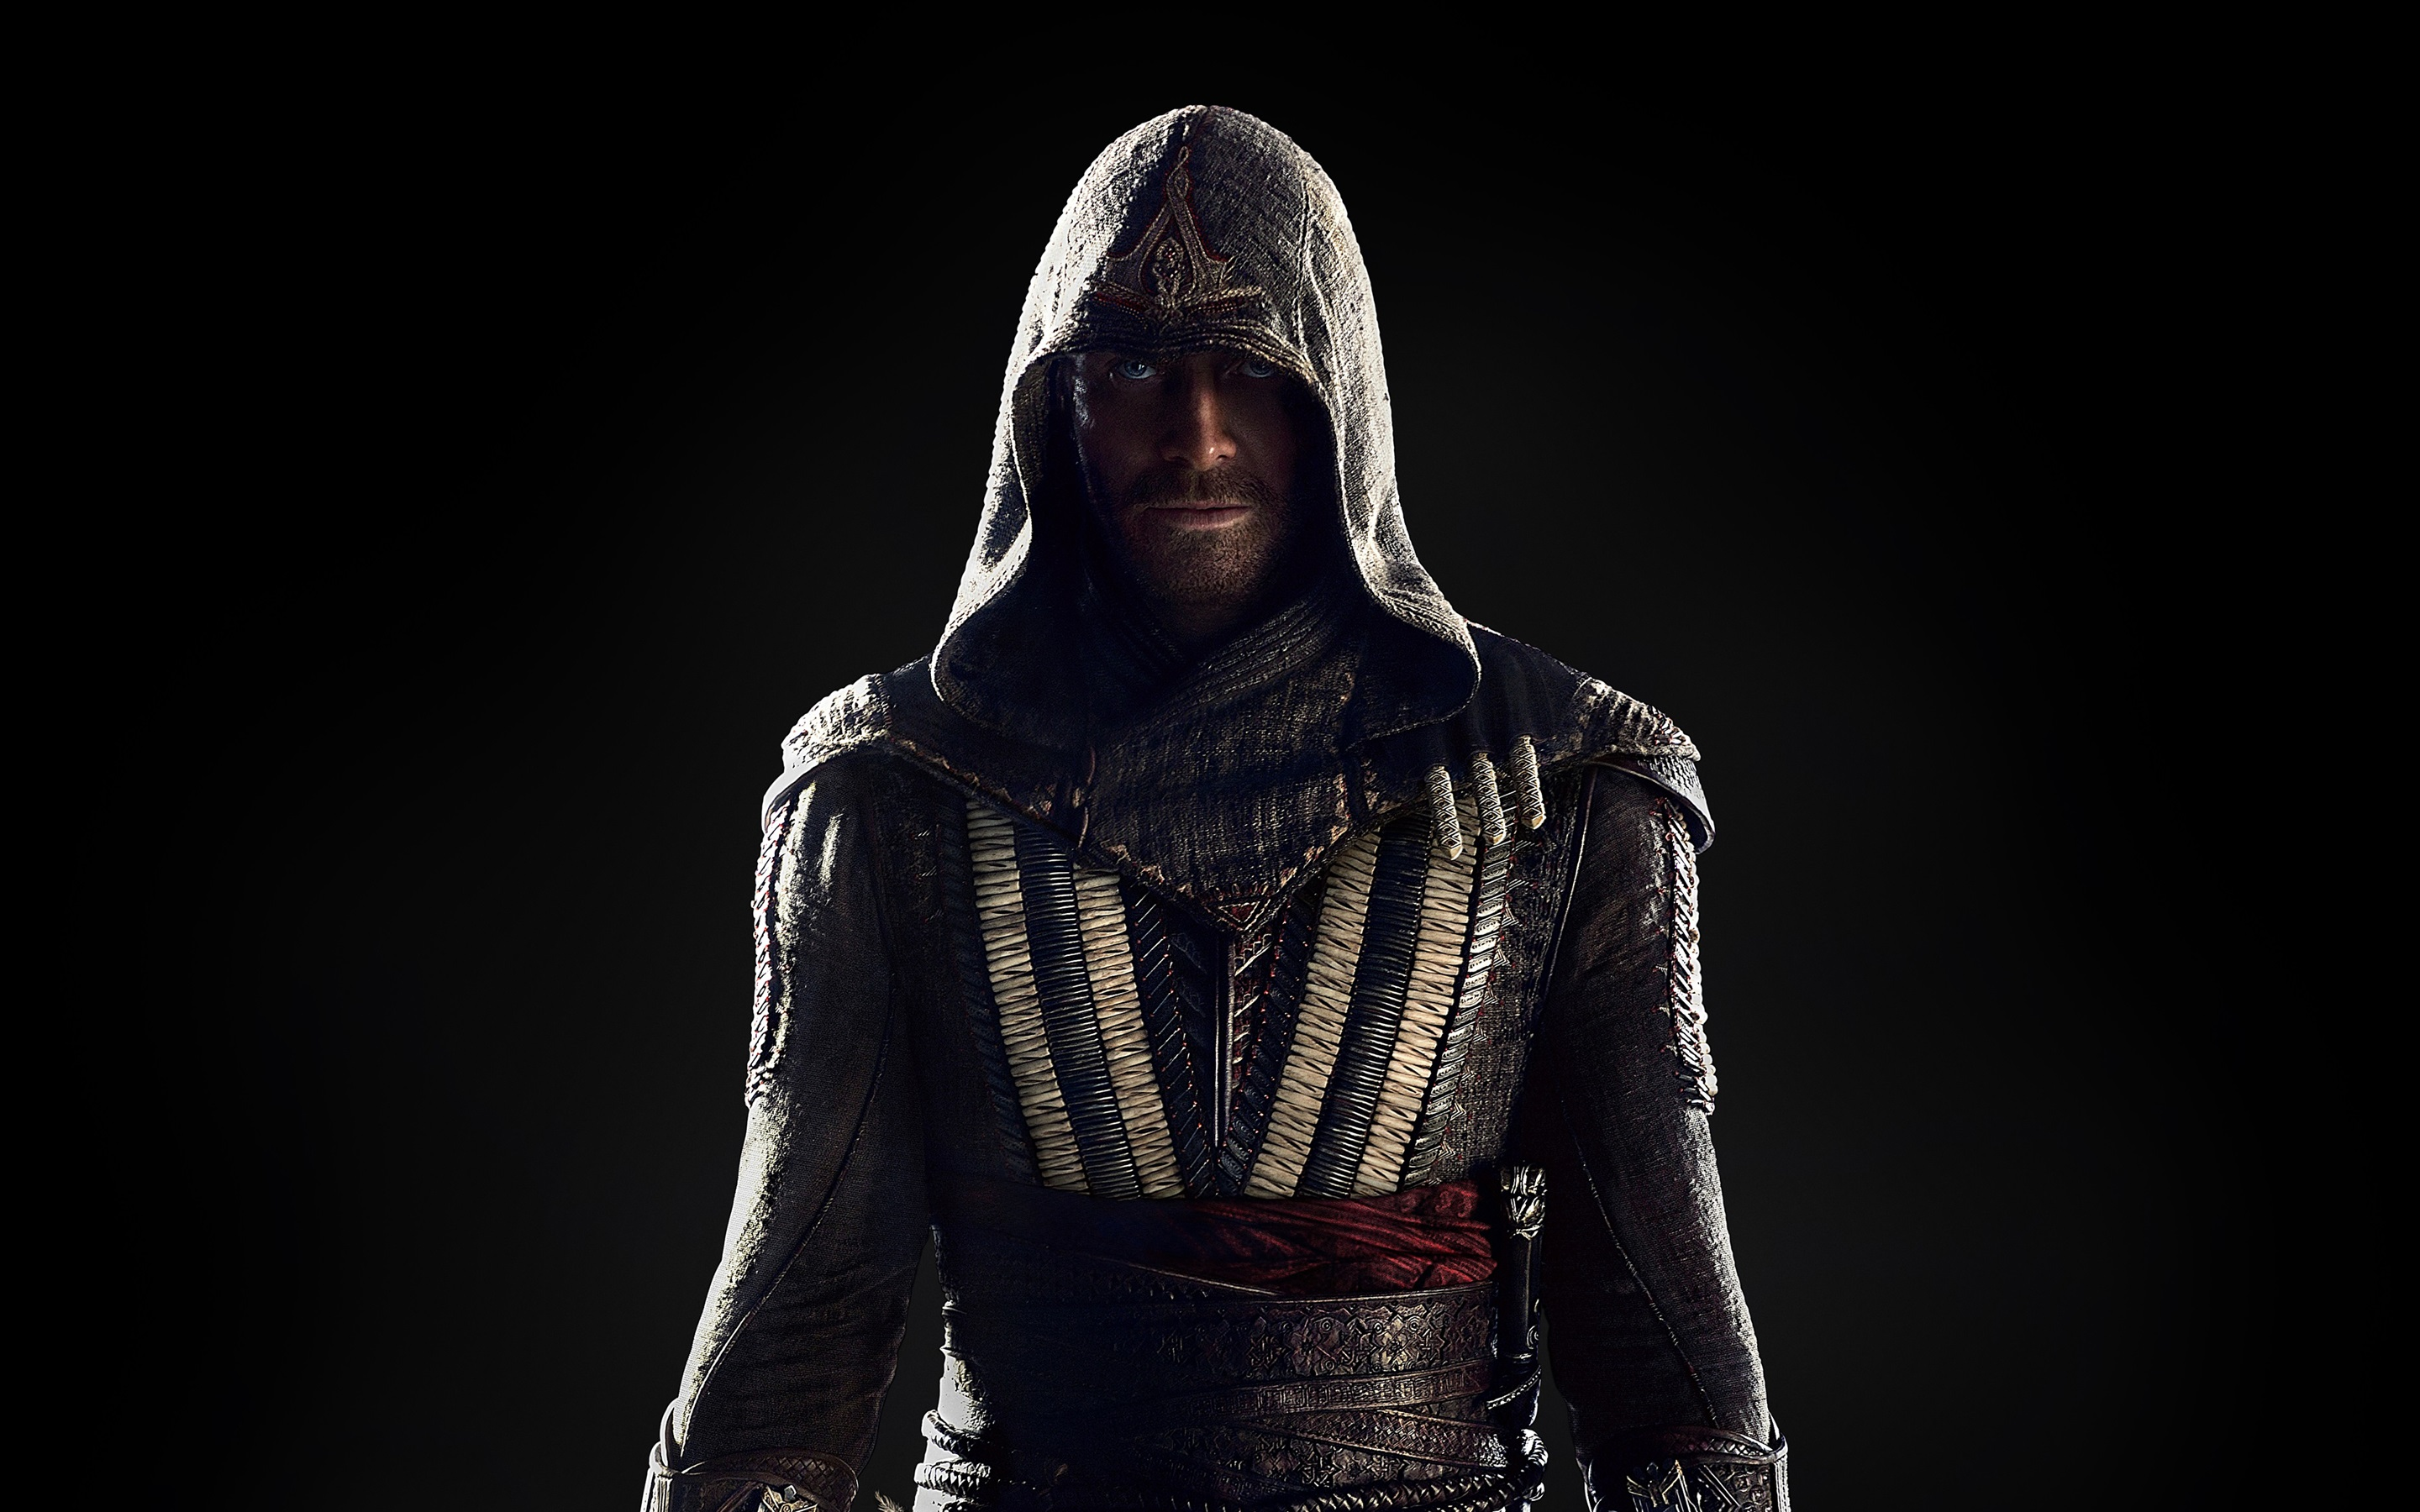 2880x1800 HD Wallpaper Michael Fassbender, Assassin's Creed 2016 movie